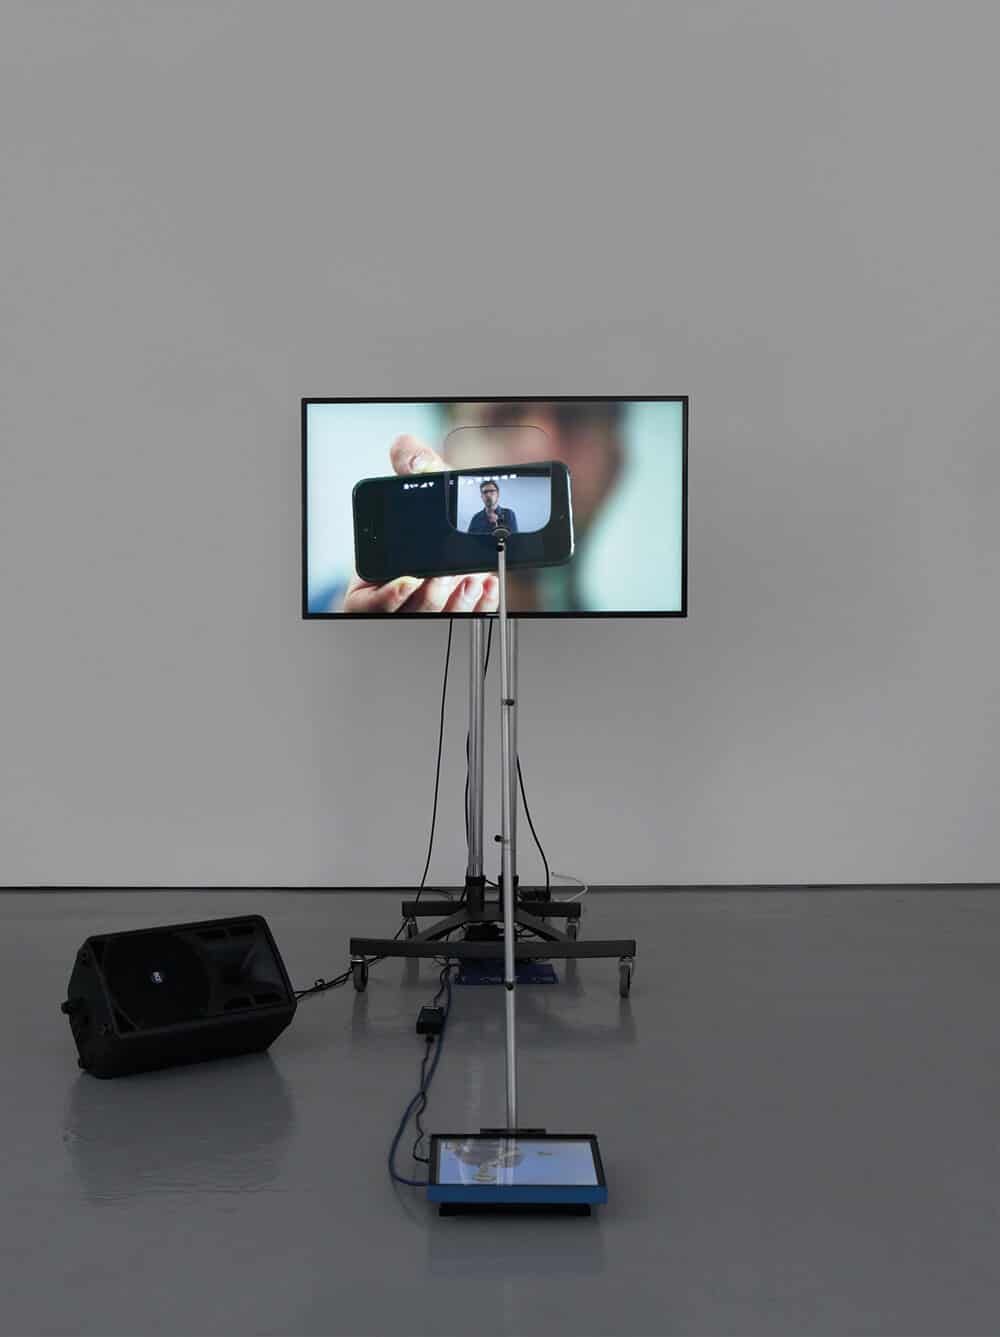 Lawrence Abu Hamdan, Contra Diction (speech against itself), 2015. Two channel video installation, teleprompter, screen, speaker variable dimensions. © Lawrence Abu Hamdan. Courtesy Maureen Paley, London.